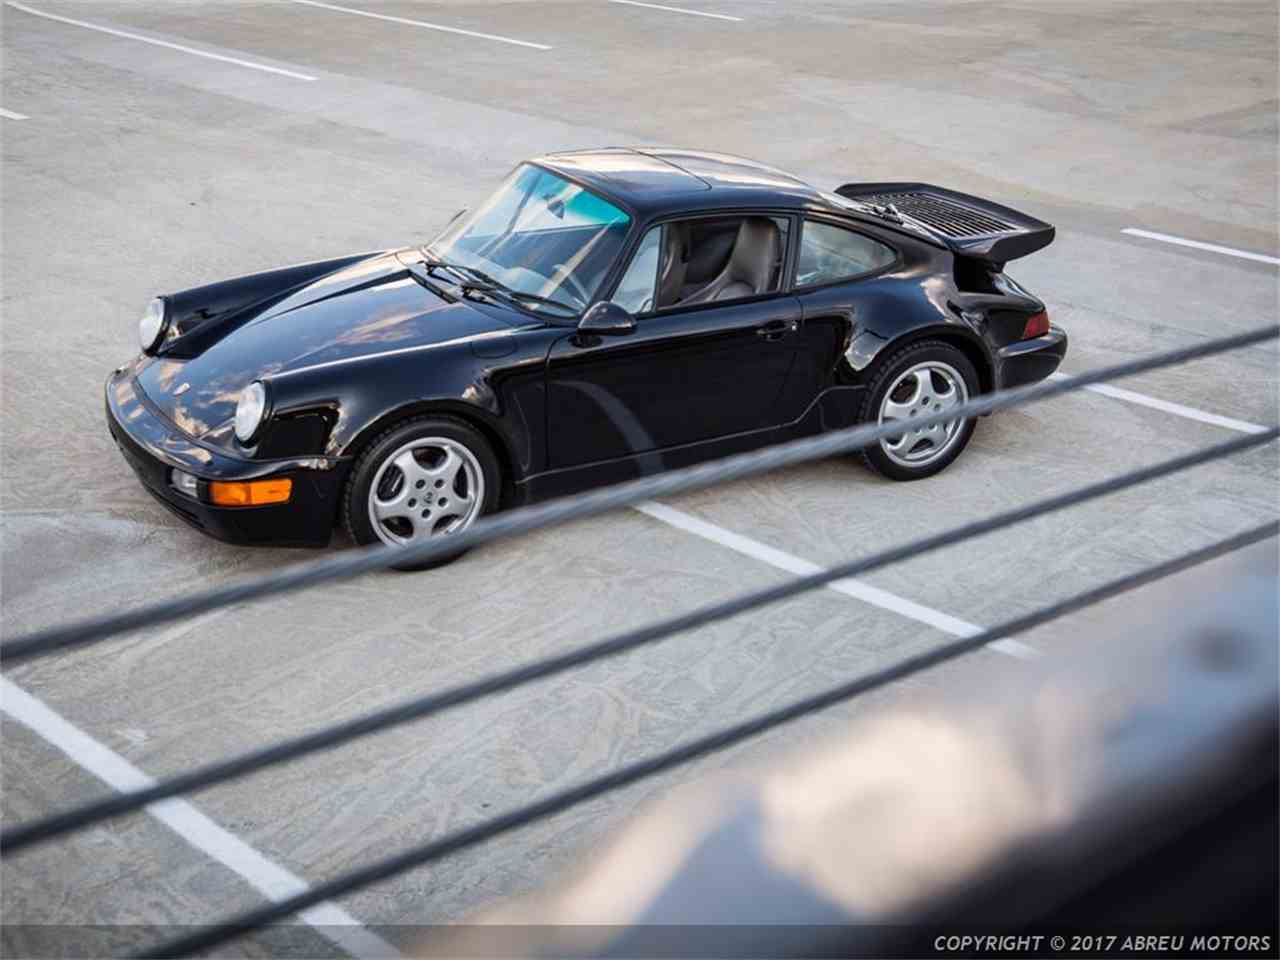 Large Picture of 1992 Porsche 911 located in Carmel Indiana - $114,995.00 Offered by Abreu Motors - JCKW